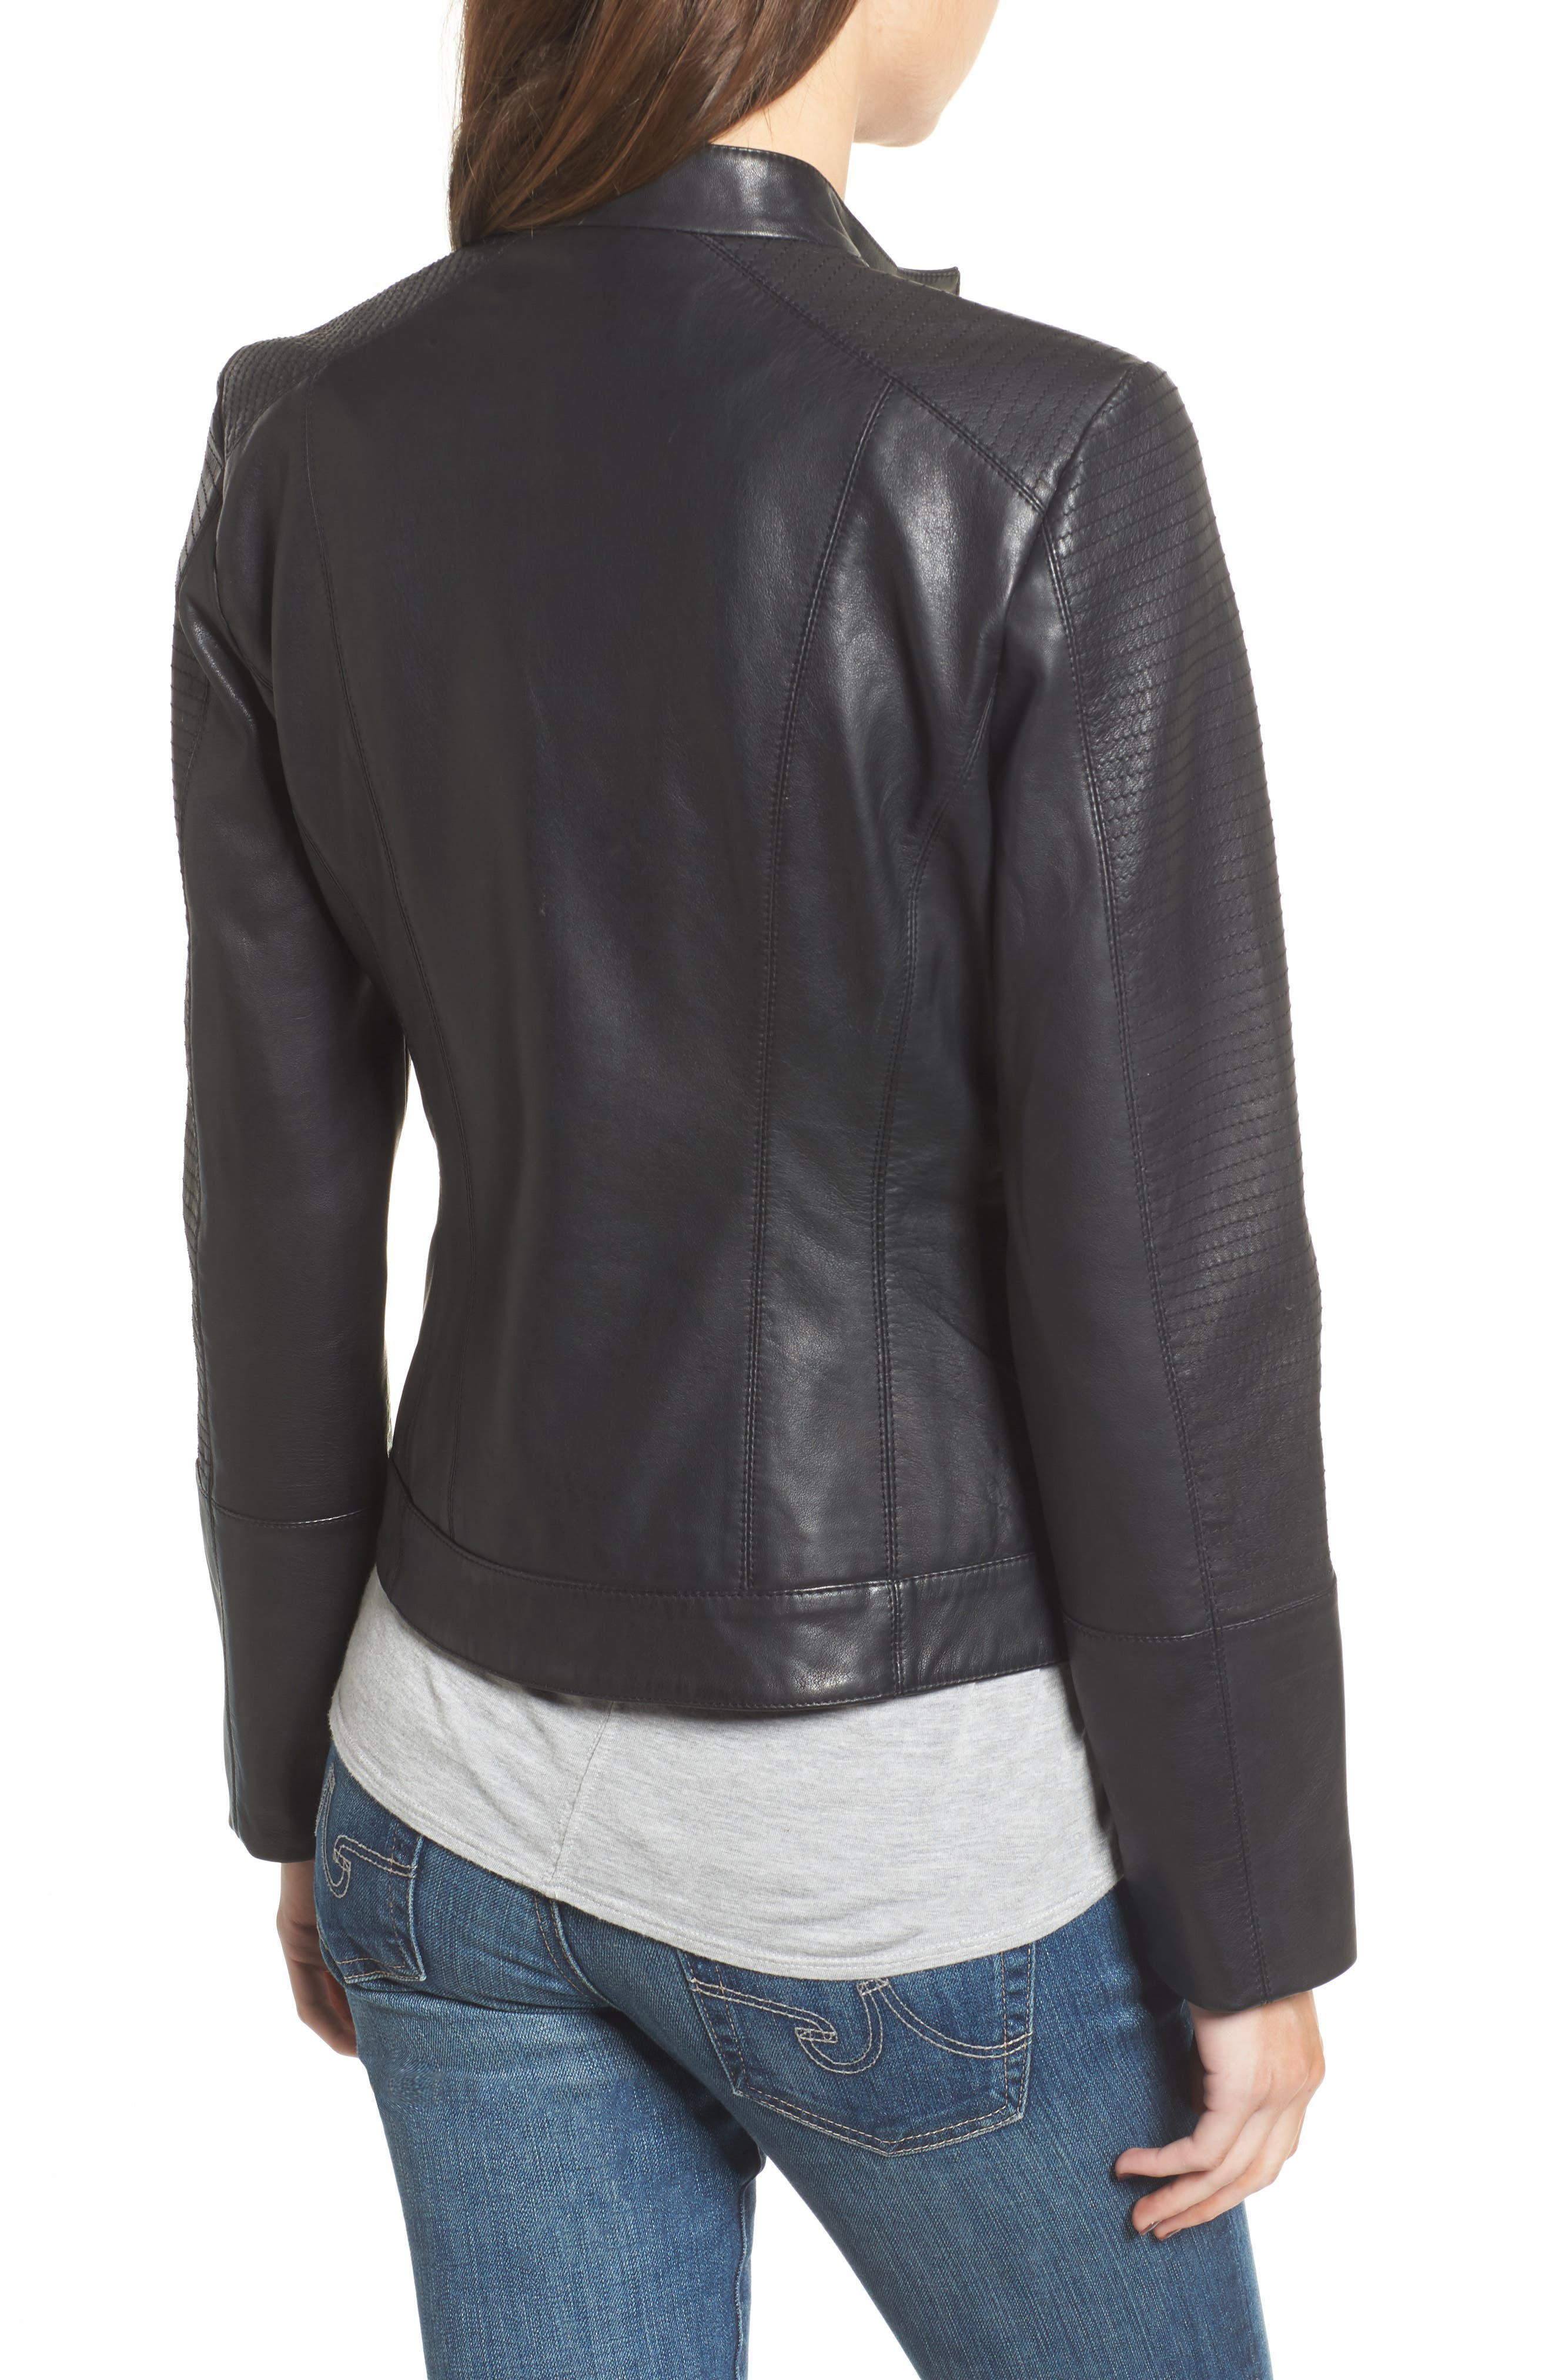 Kirwin Leather Moto Jacket,                             Alternate thumbnail 2, color,                             001